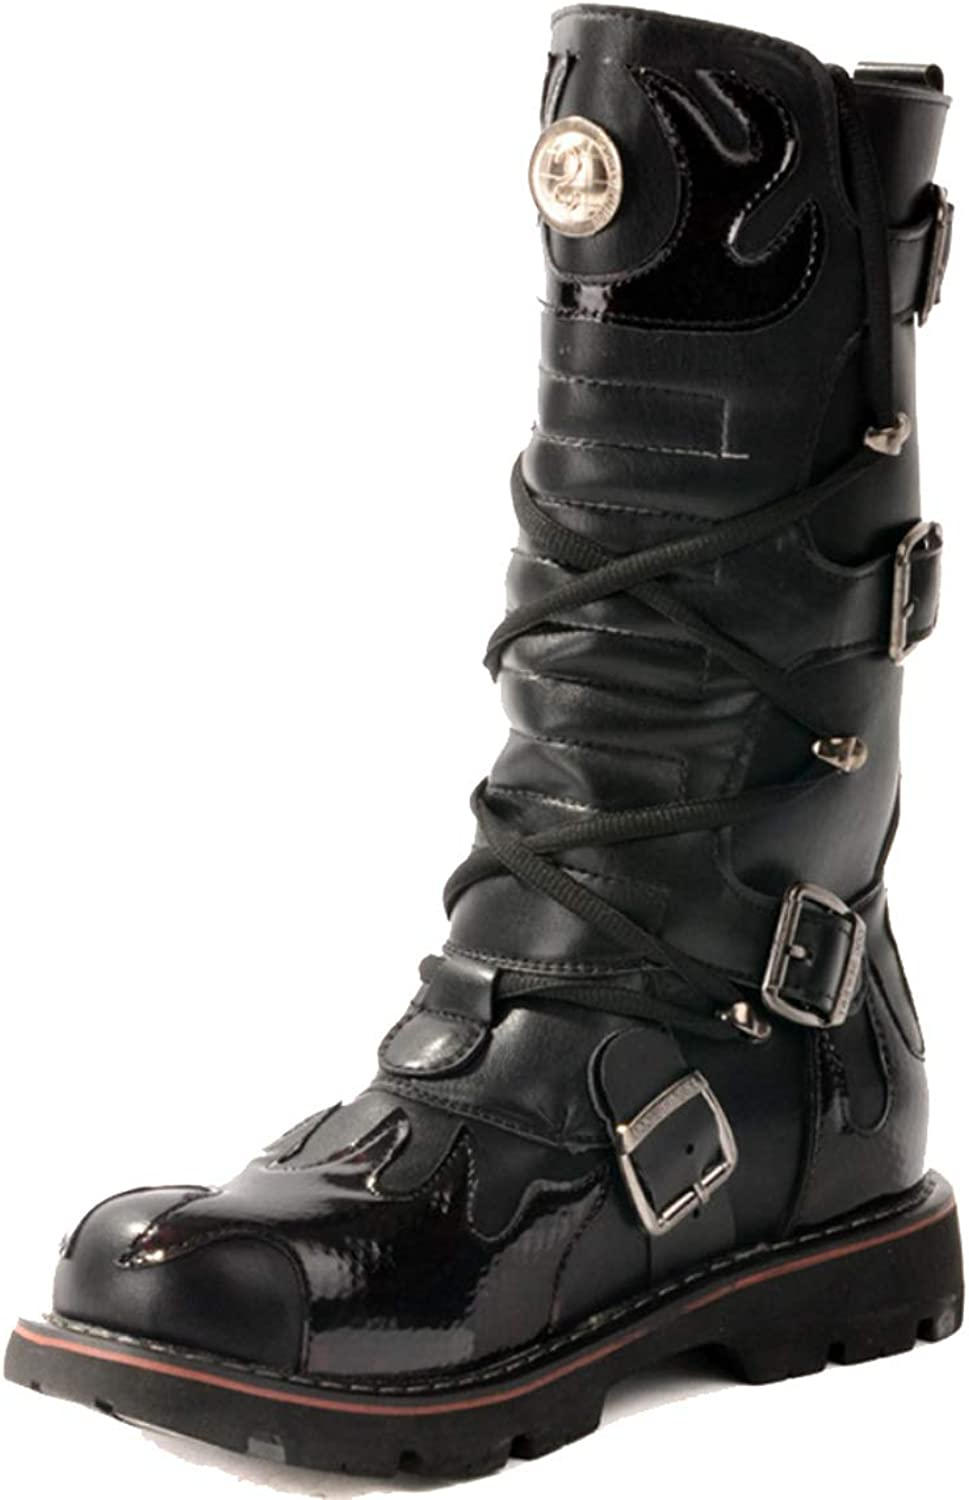 Men's Boots Riding Boots Outdoor Totem Fashion Buckle Motorcycle Boots High Tube Tooling Boots Punk Cowboy Boots for Fall Winter